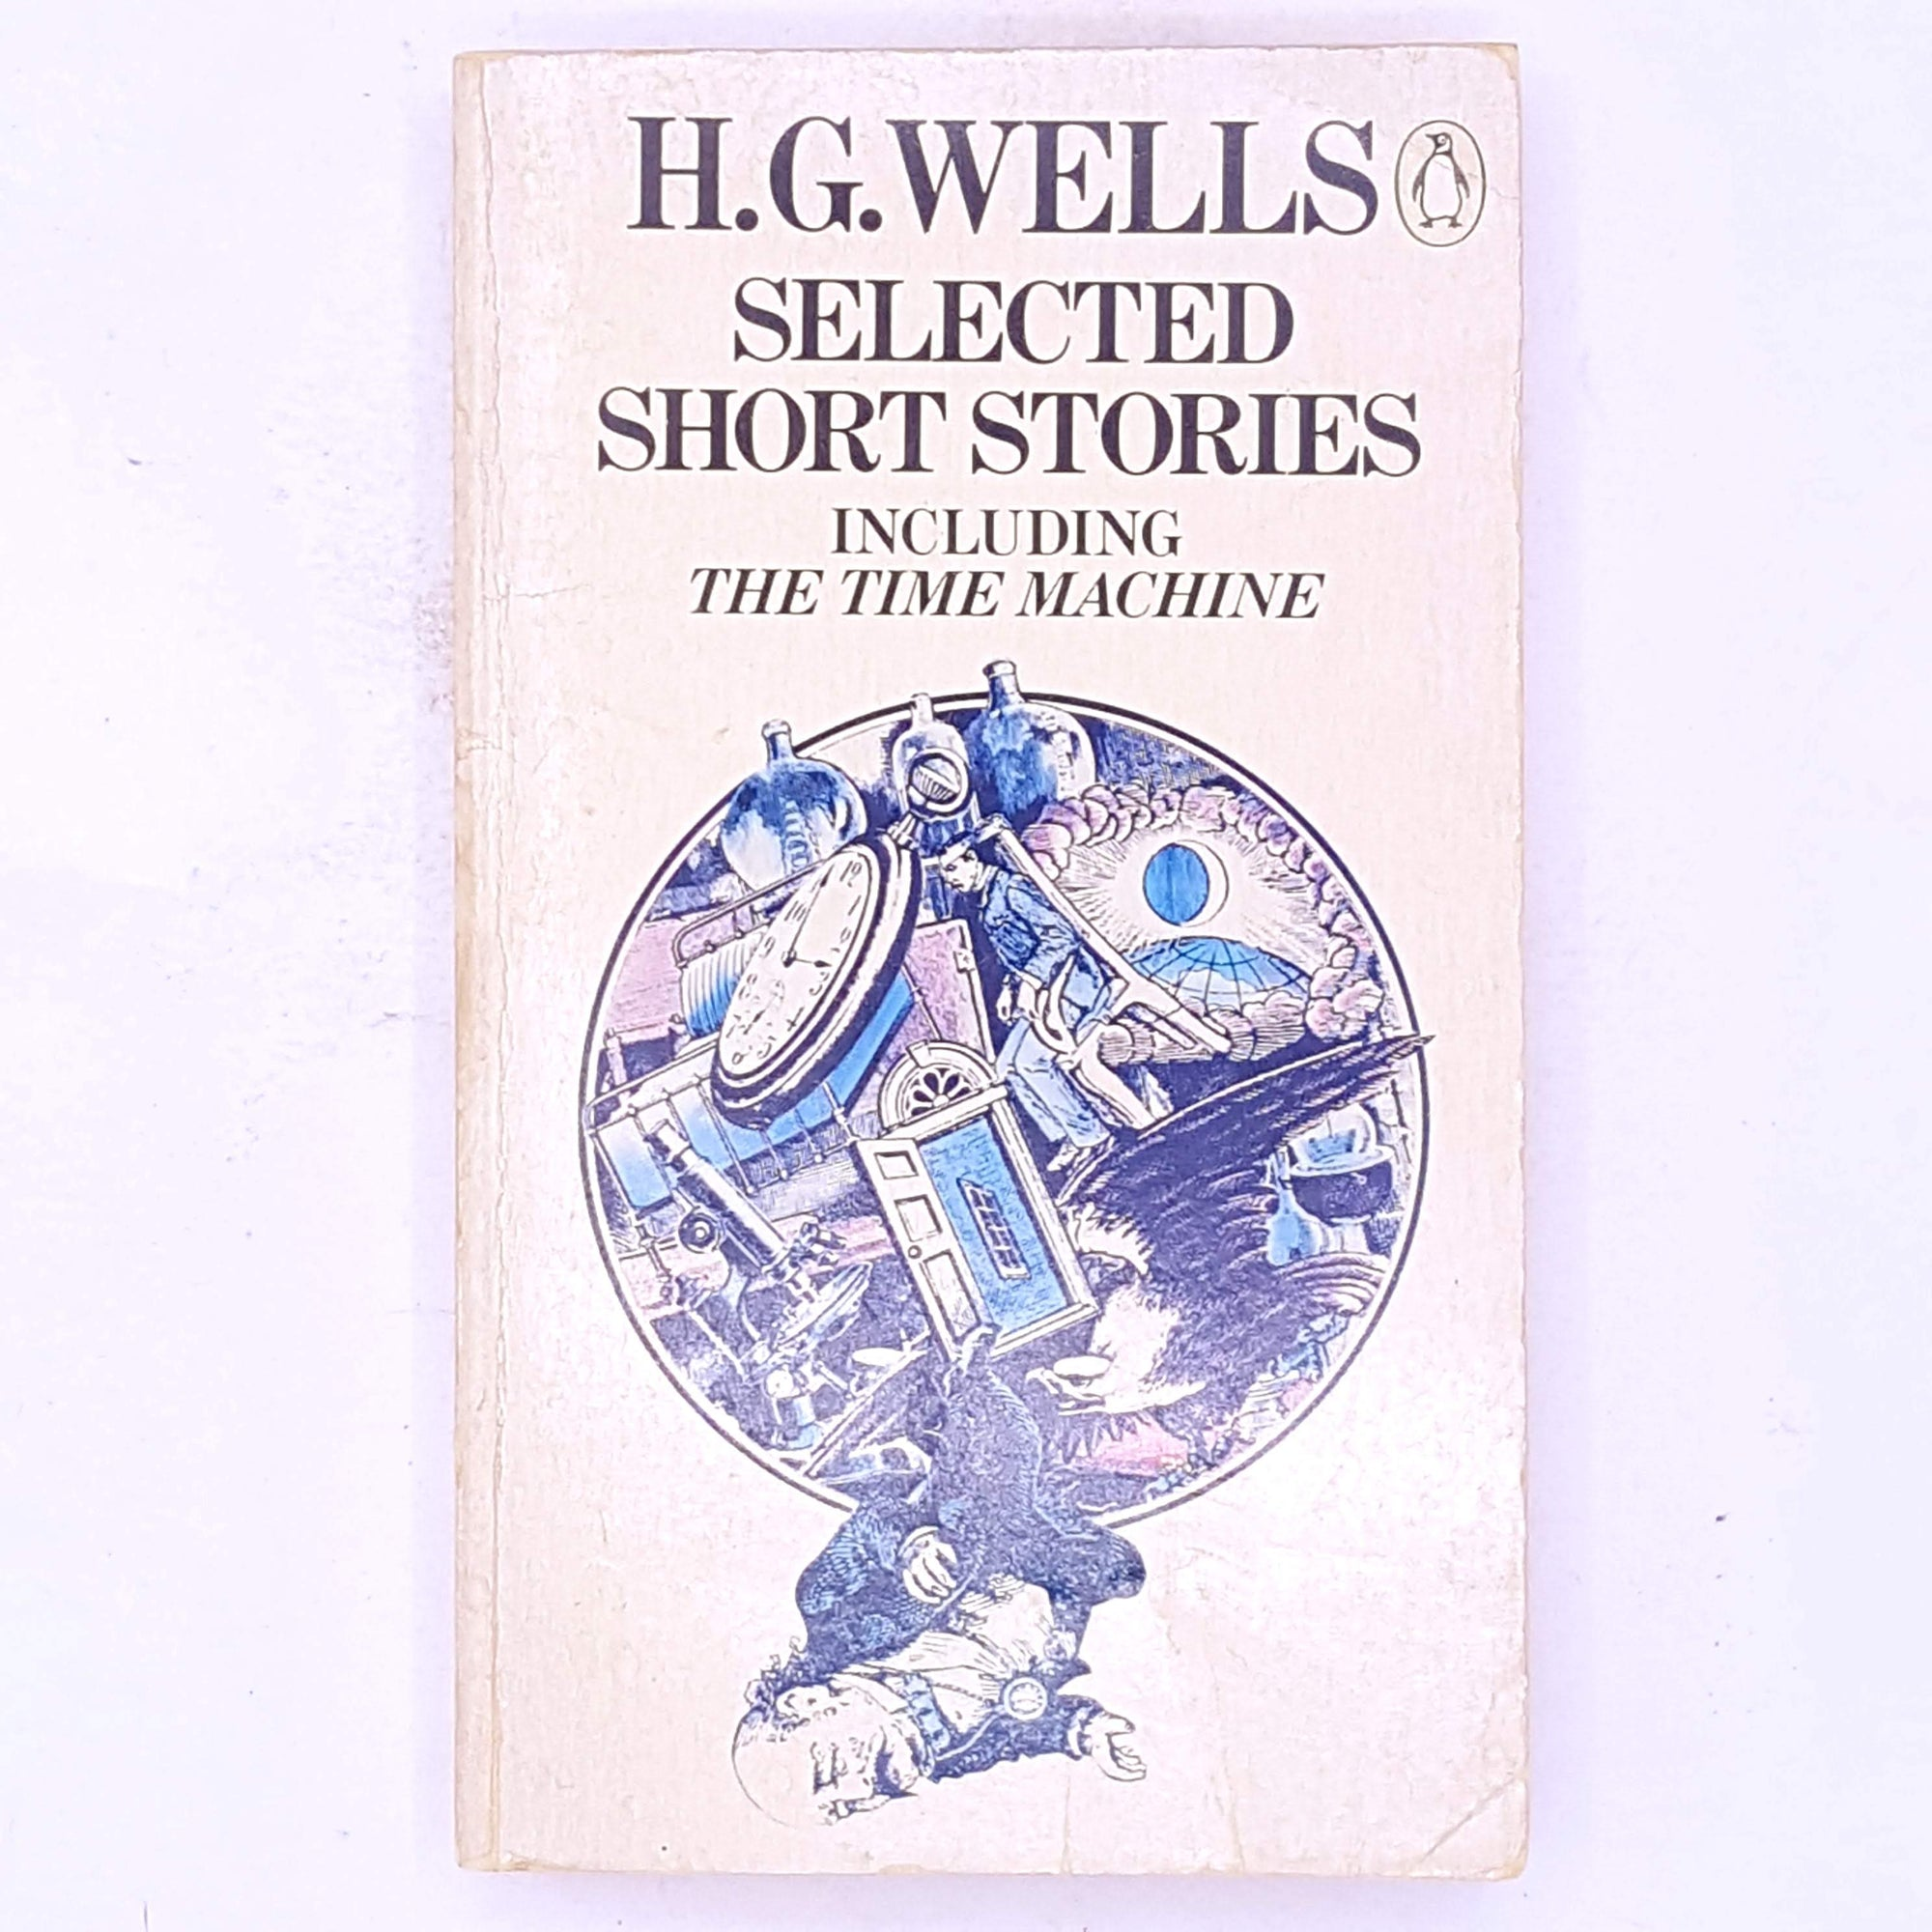 H.G. Wells Selected Short Stories including the time machine